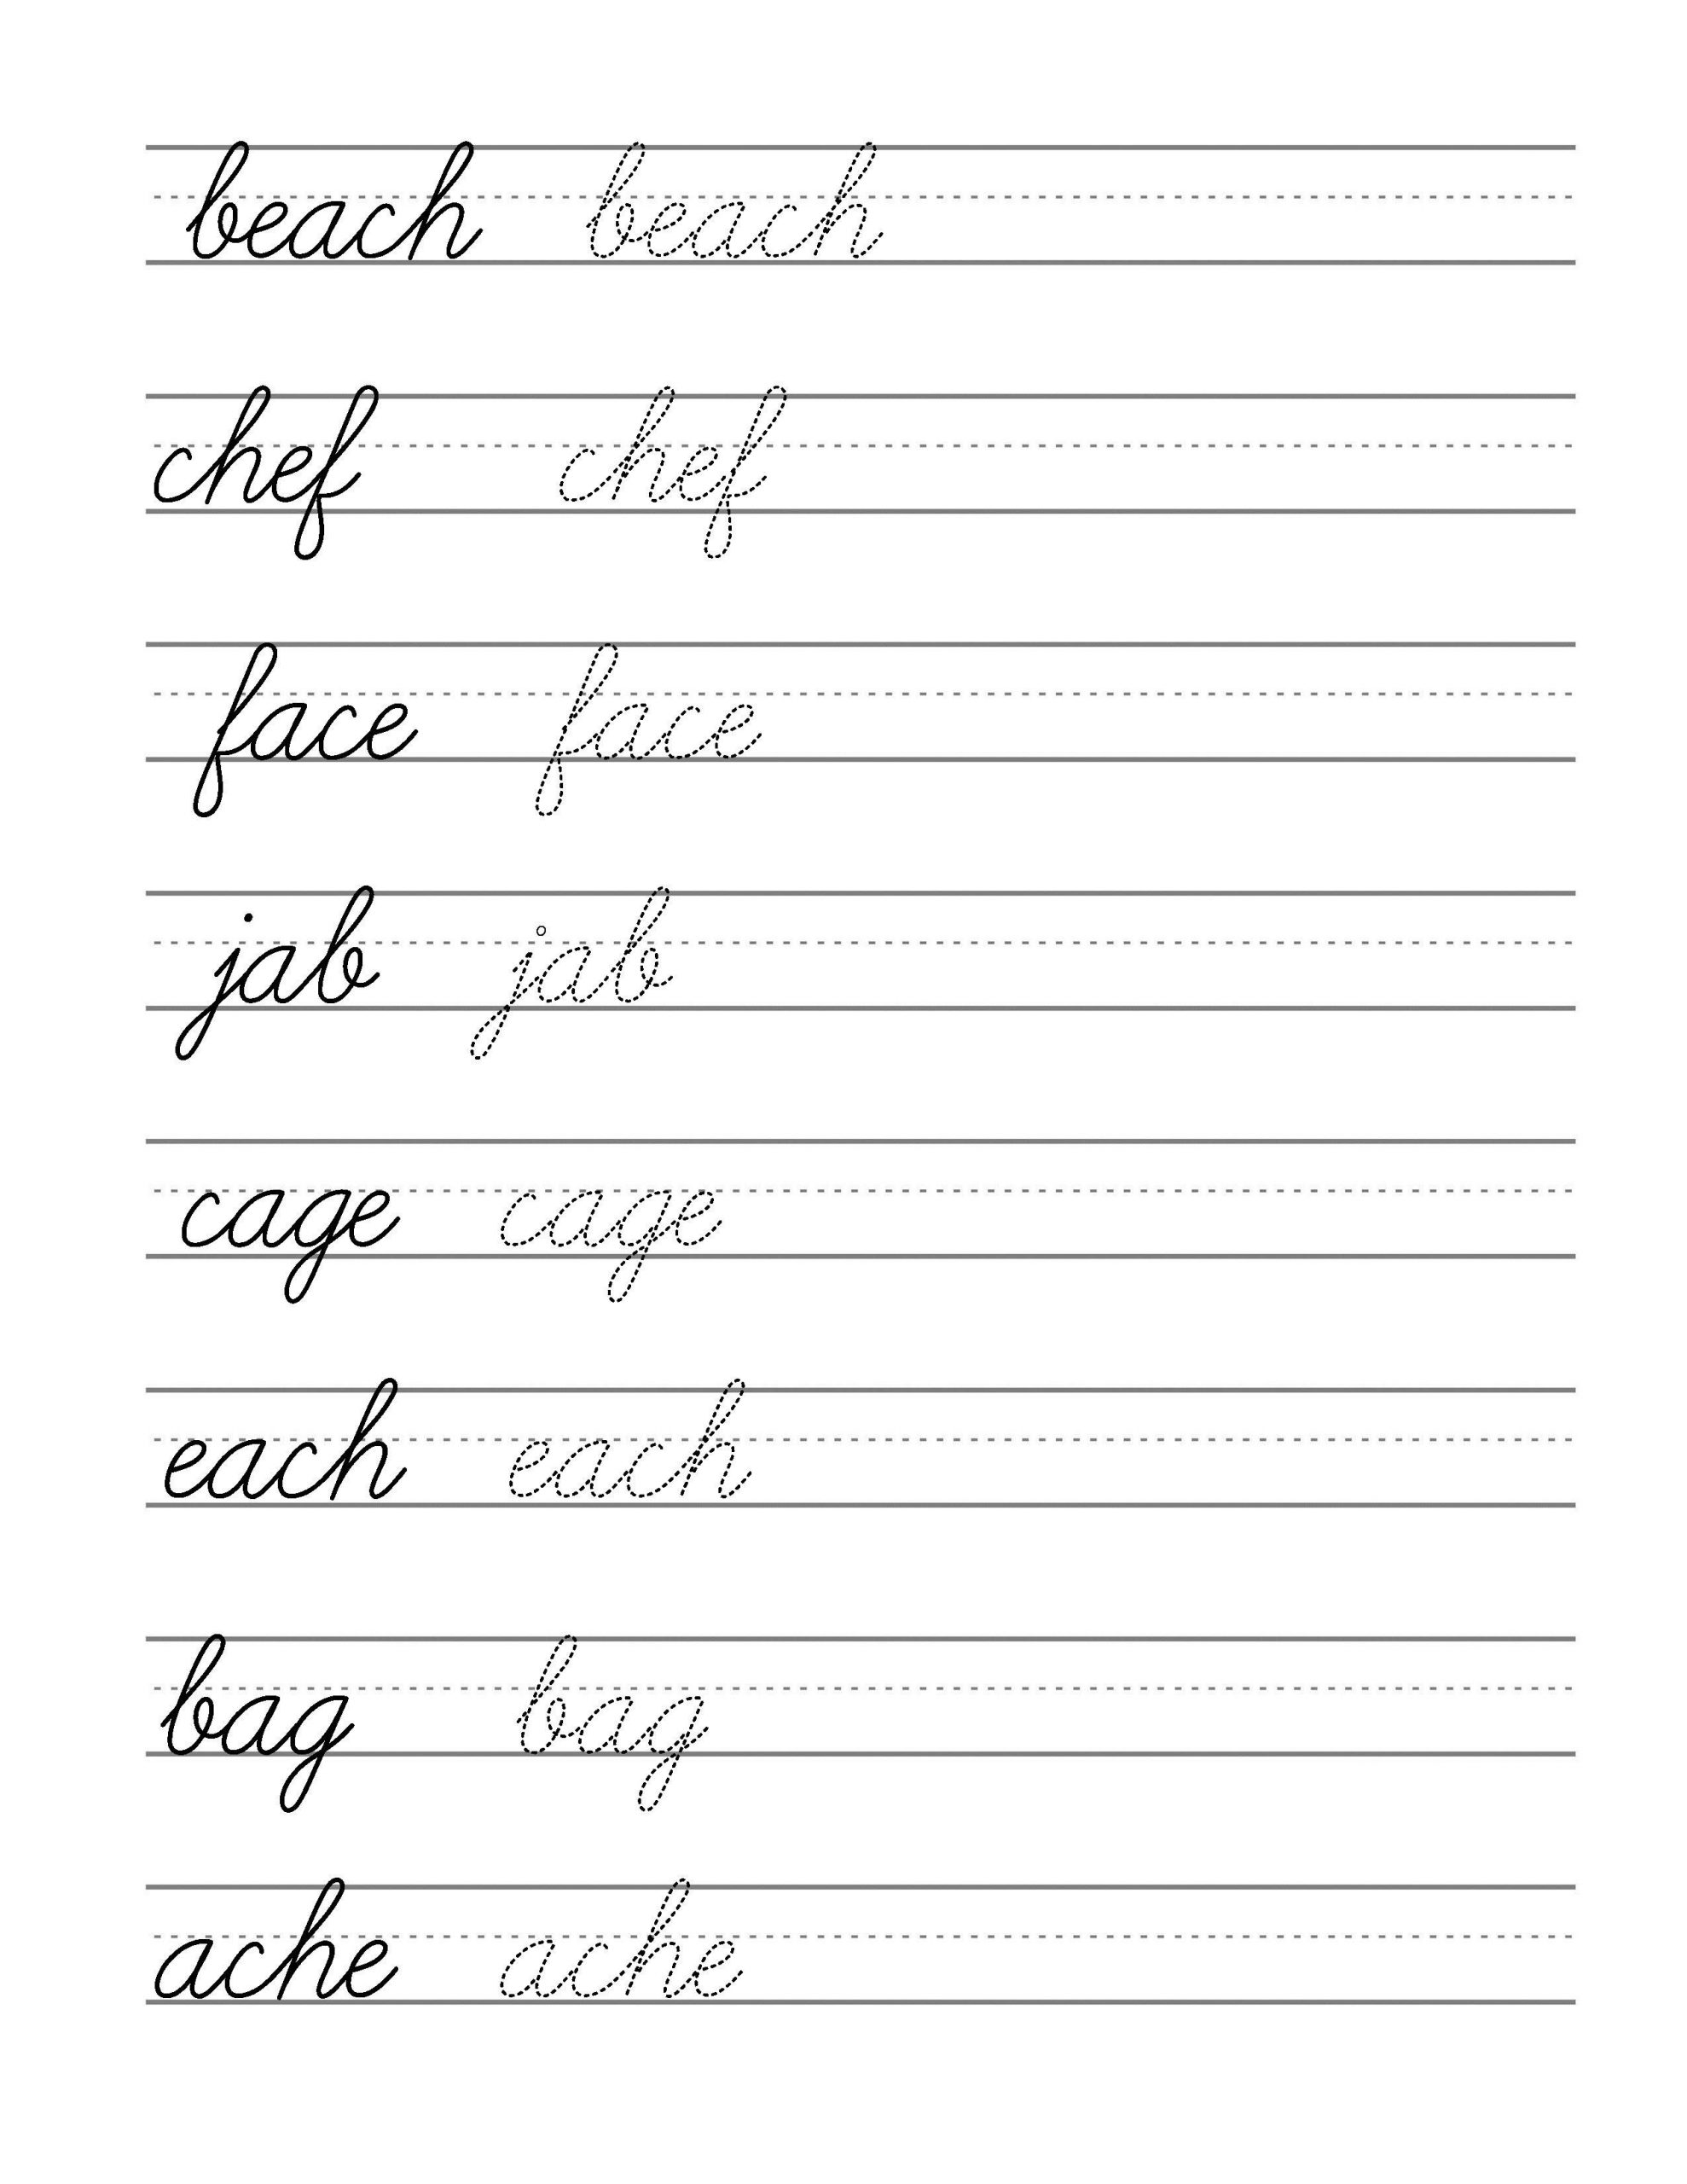 Color Words Handwriting Worksheets Free Beginning Cursive Writing Template Part 3